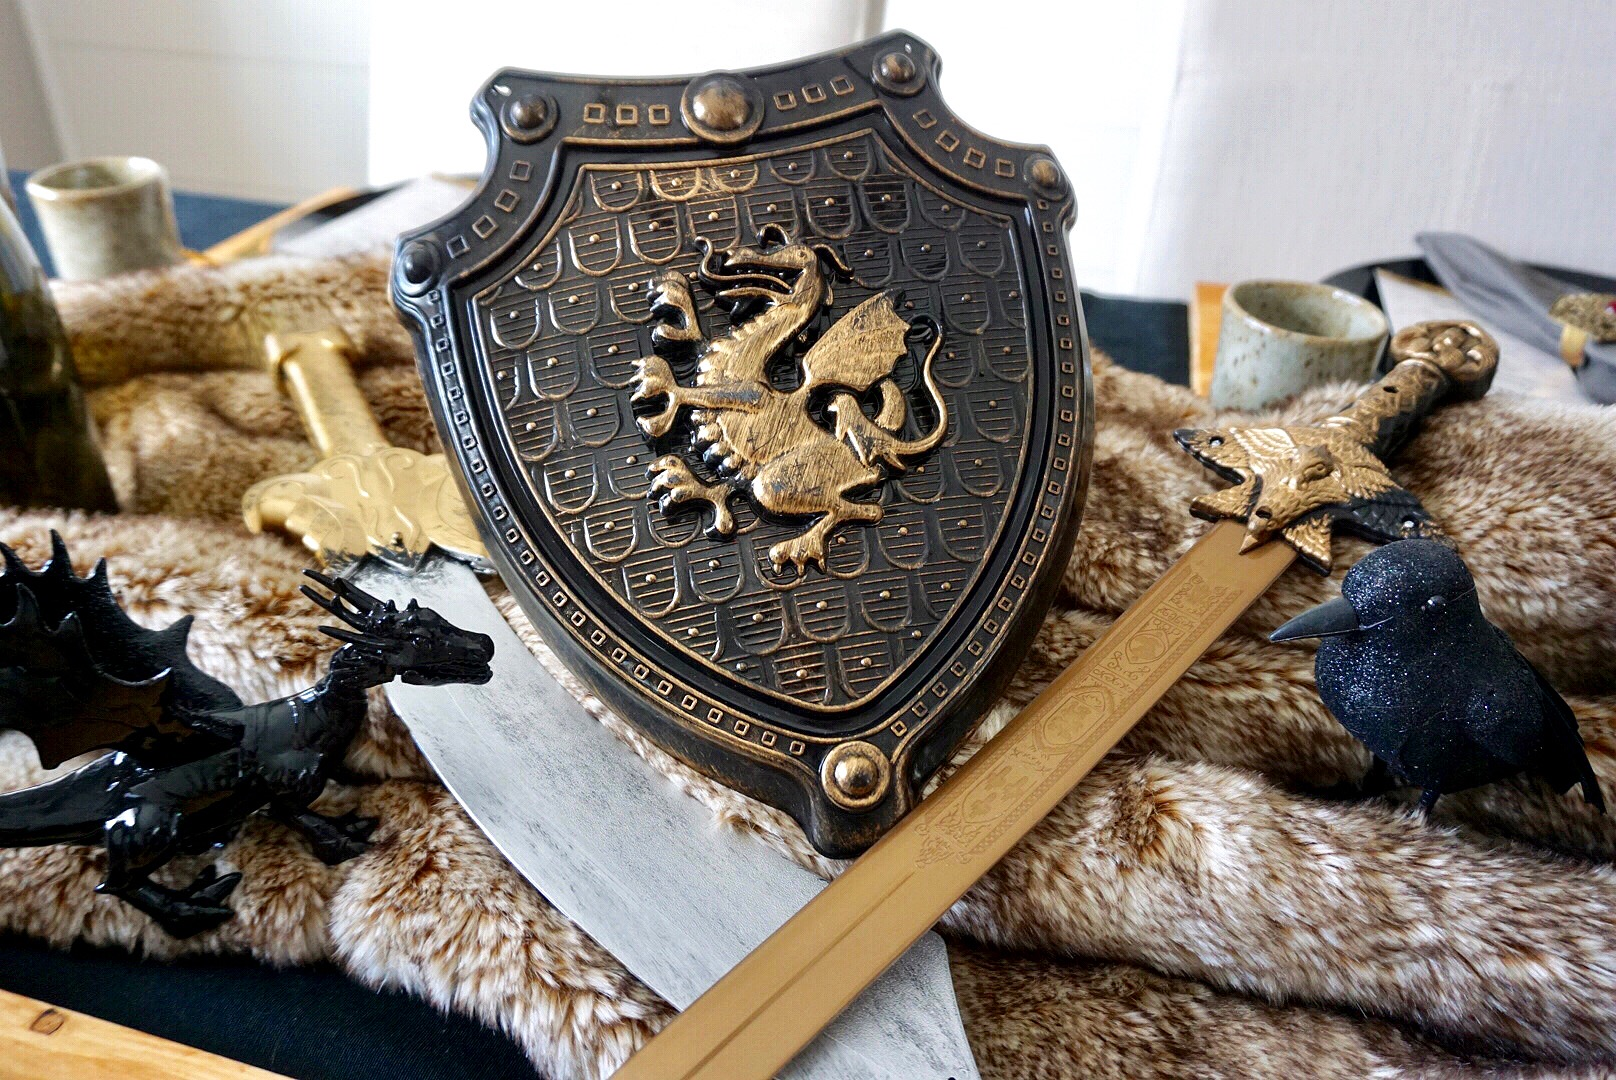 Toy swords and shield, a spray painted dragon, and a crow make an easy Game of Thrones themed centerpiece.